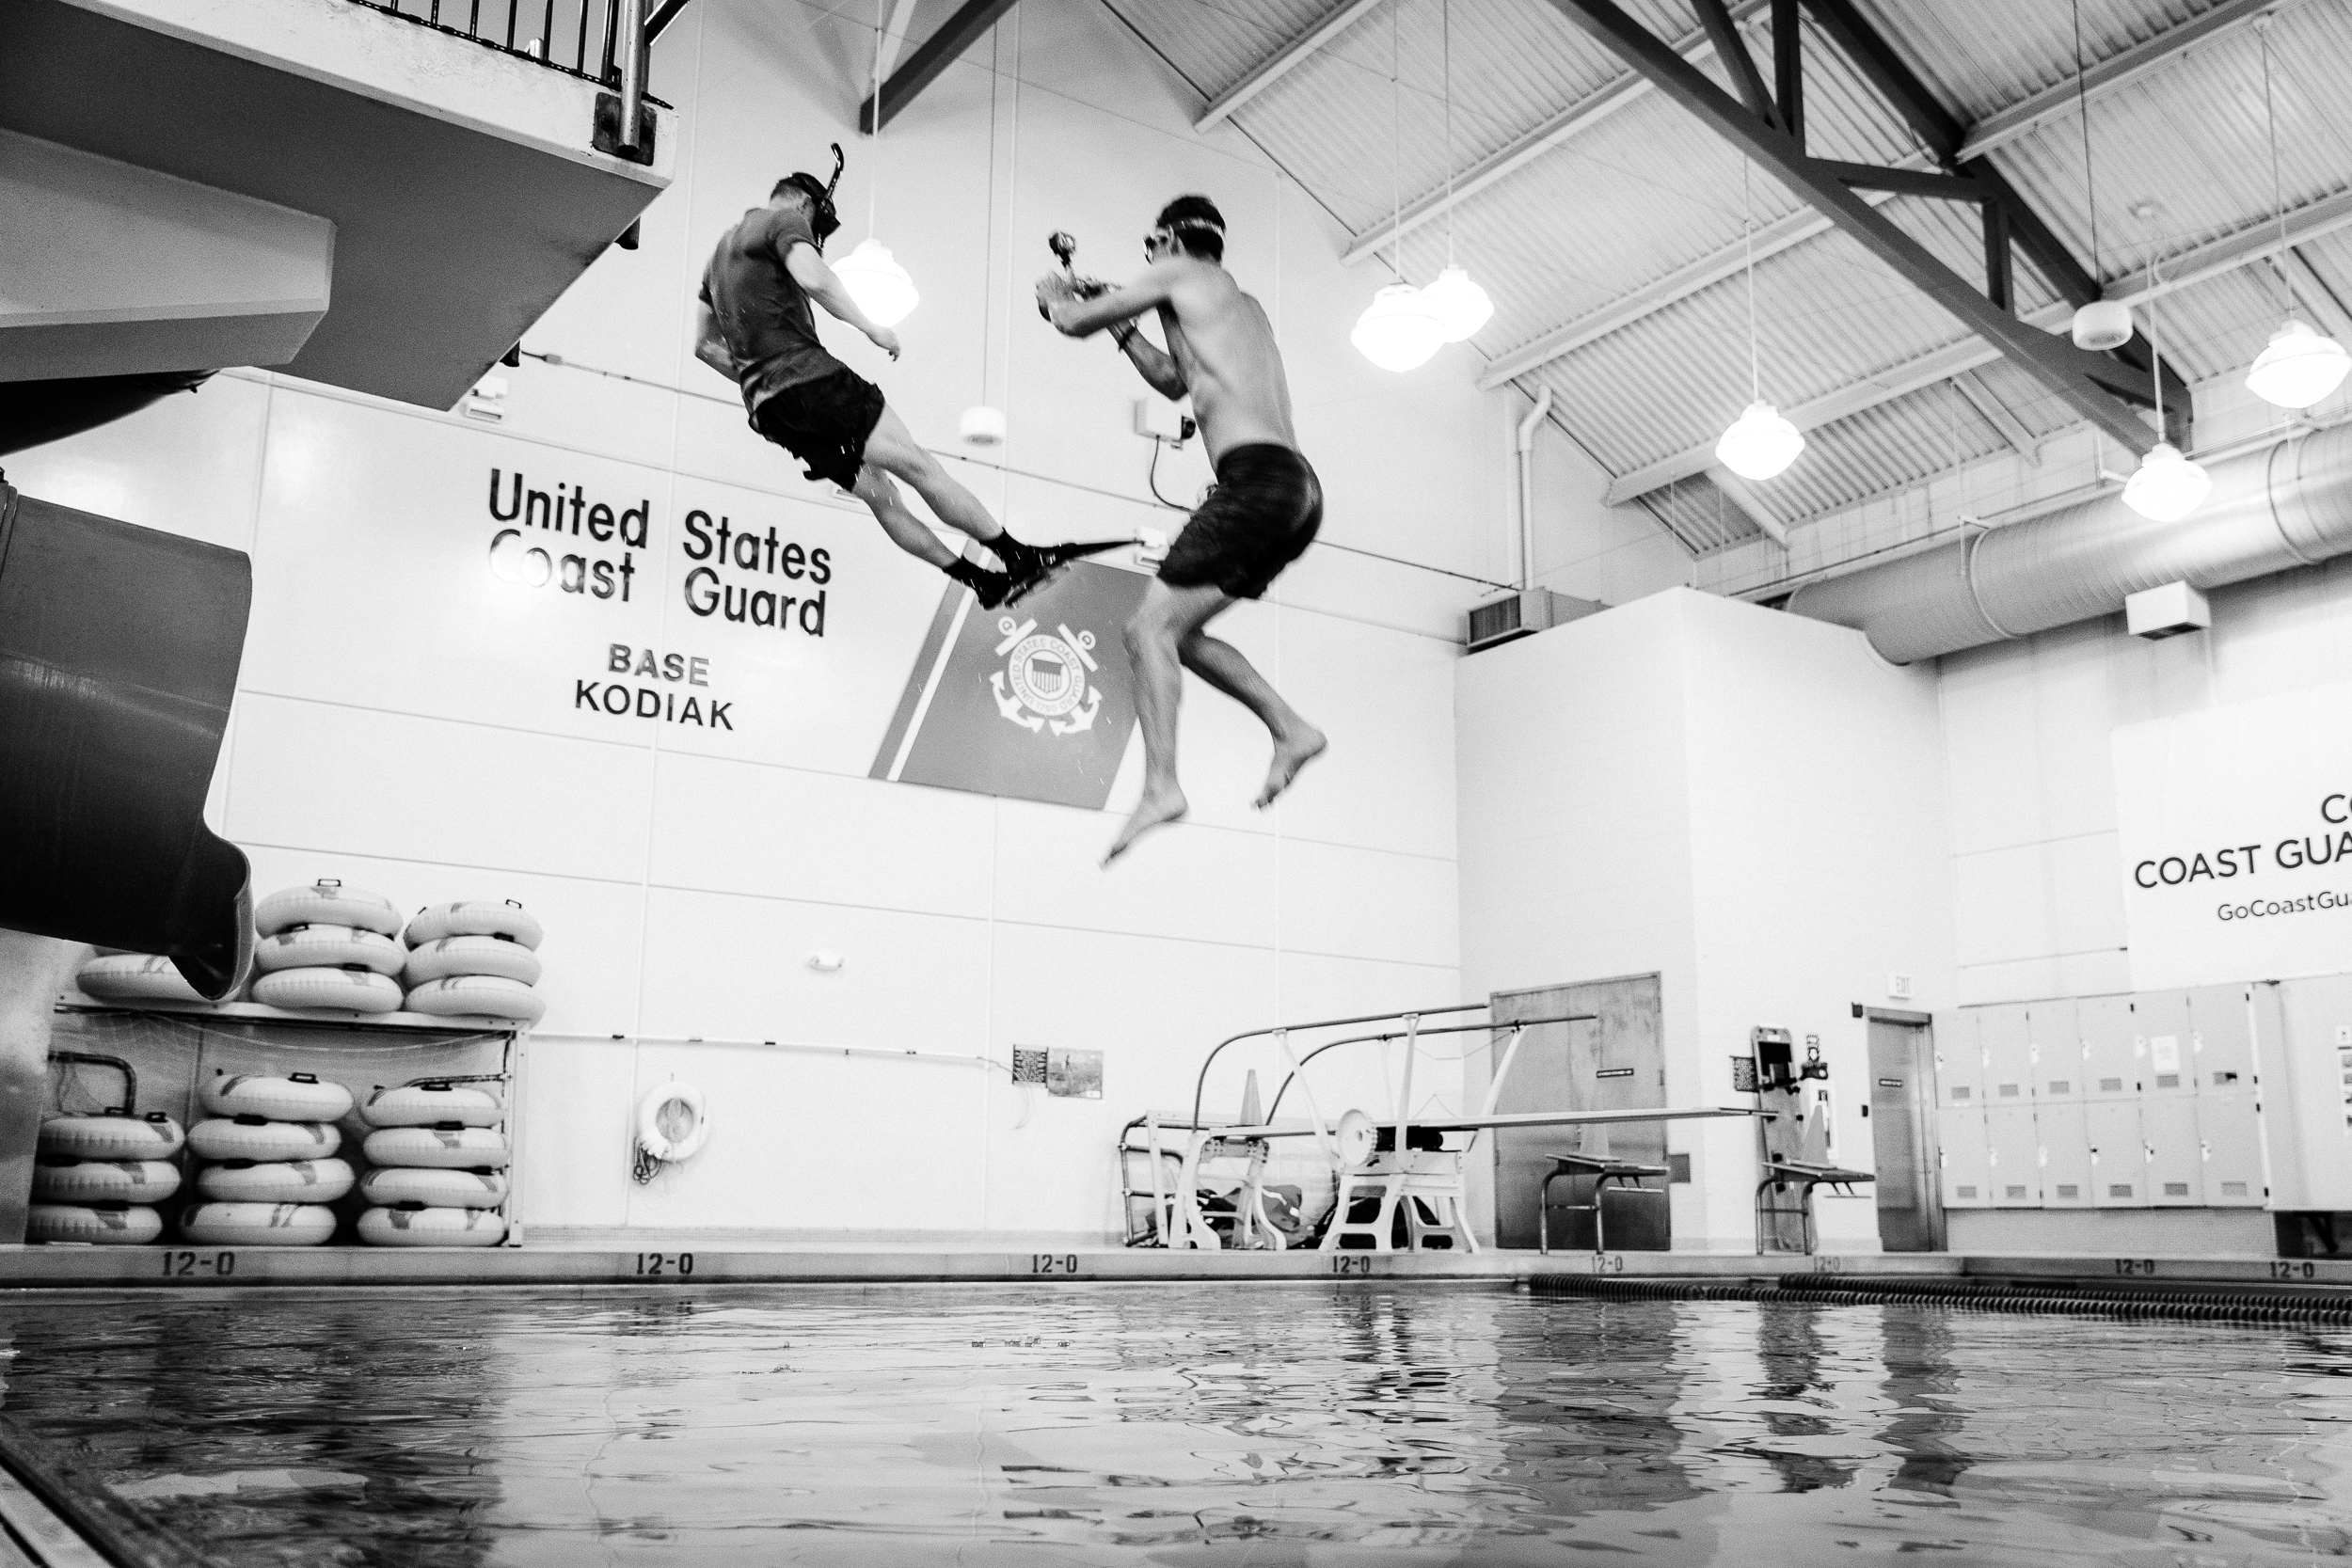 Justin Bastien diving in with a Rescue Swimmer in the USCG training facility. Kodiak Air Station, Alaska.